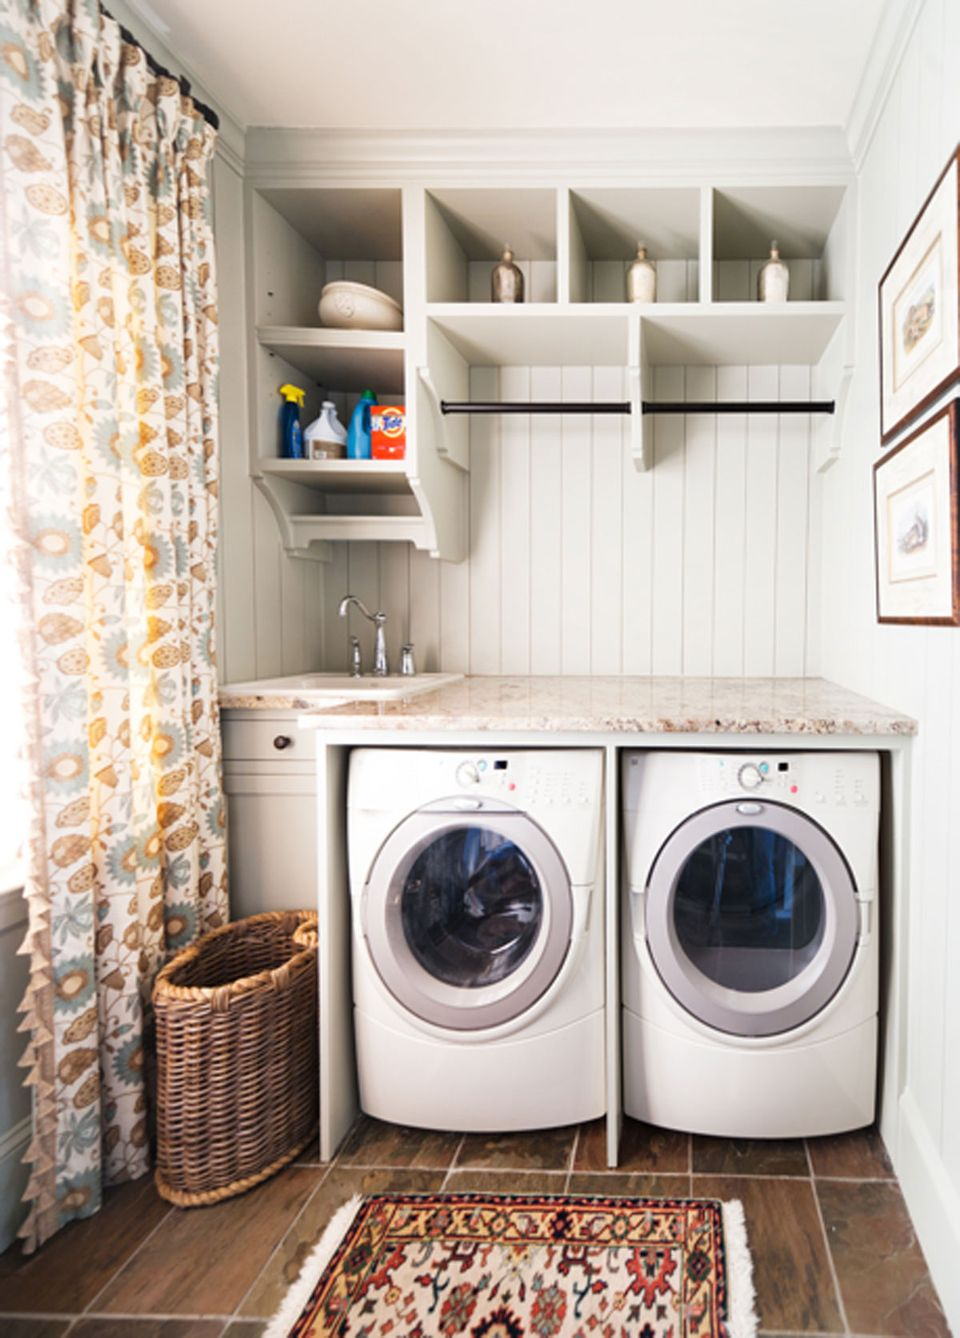 Laundry Closet With Sink Google Search Laundry Room Storage Laundry Room Storage Cabinet Laundry Room Storage Shelves